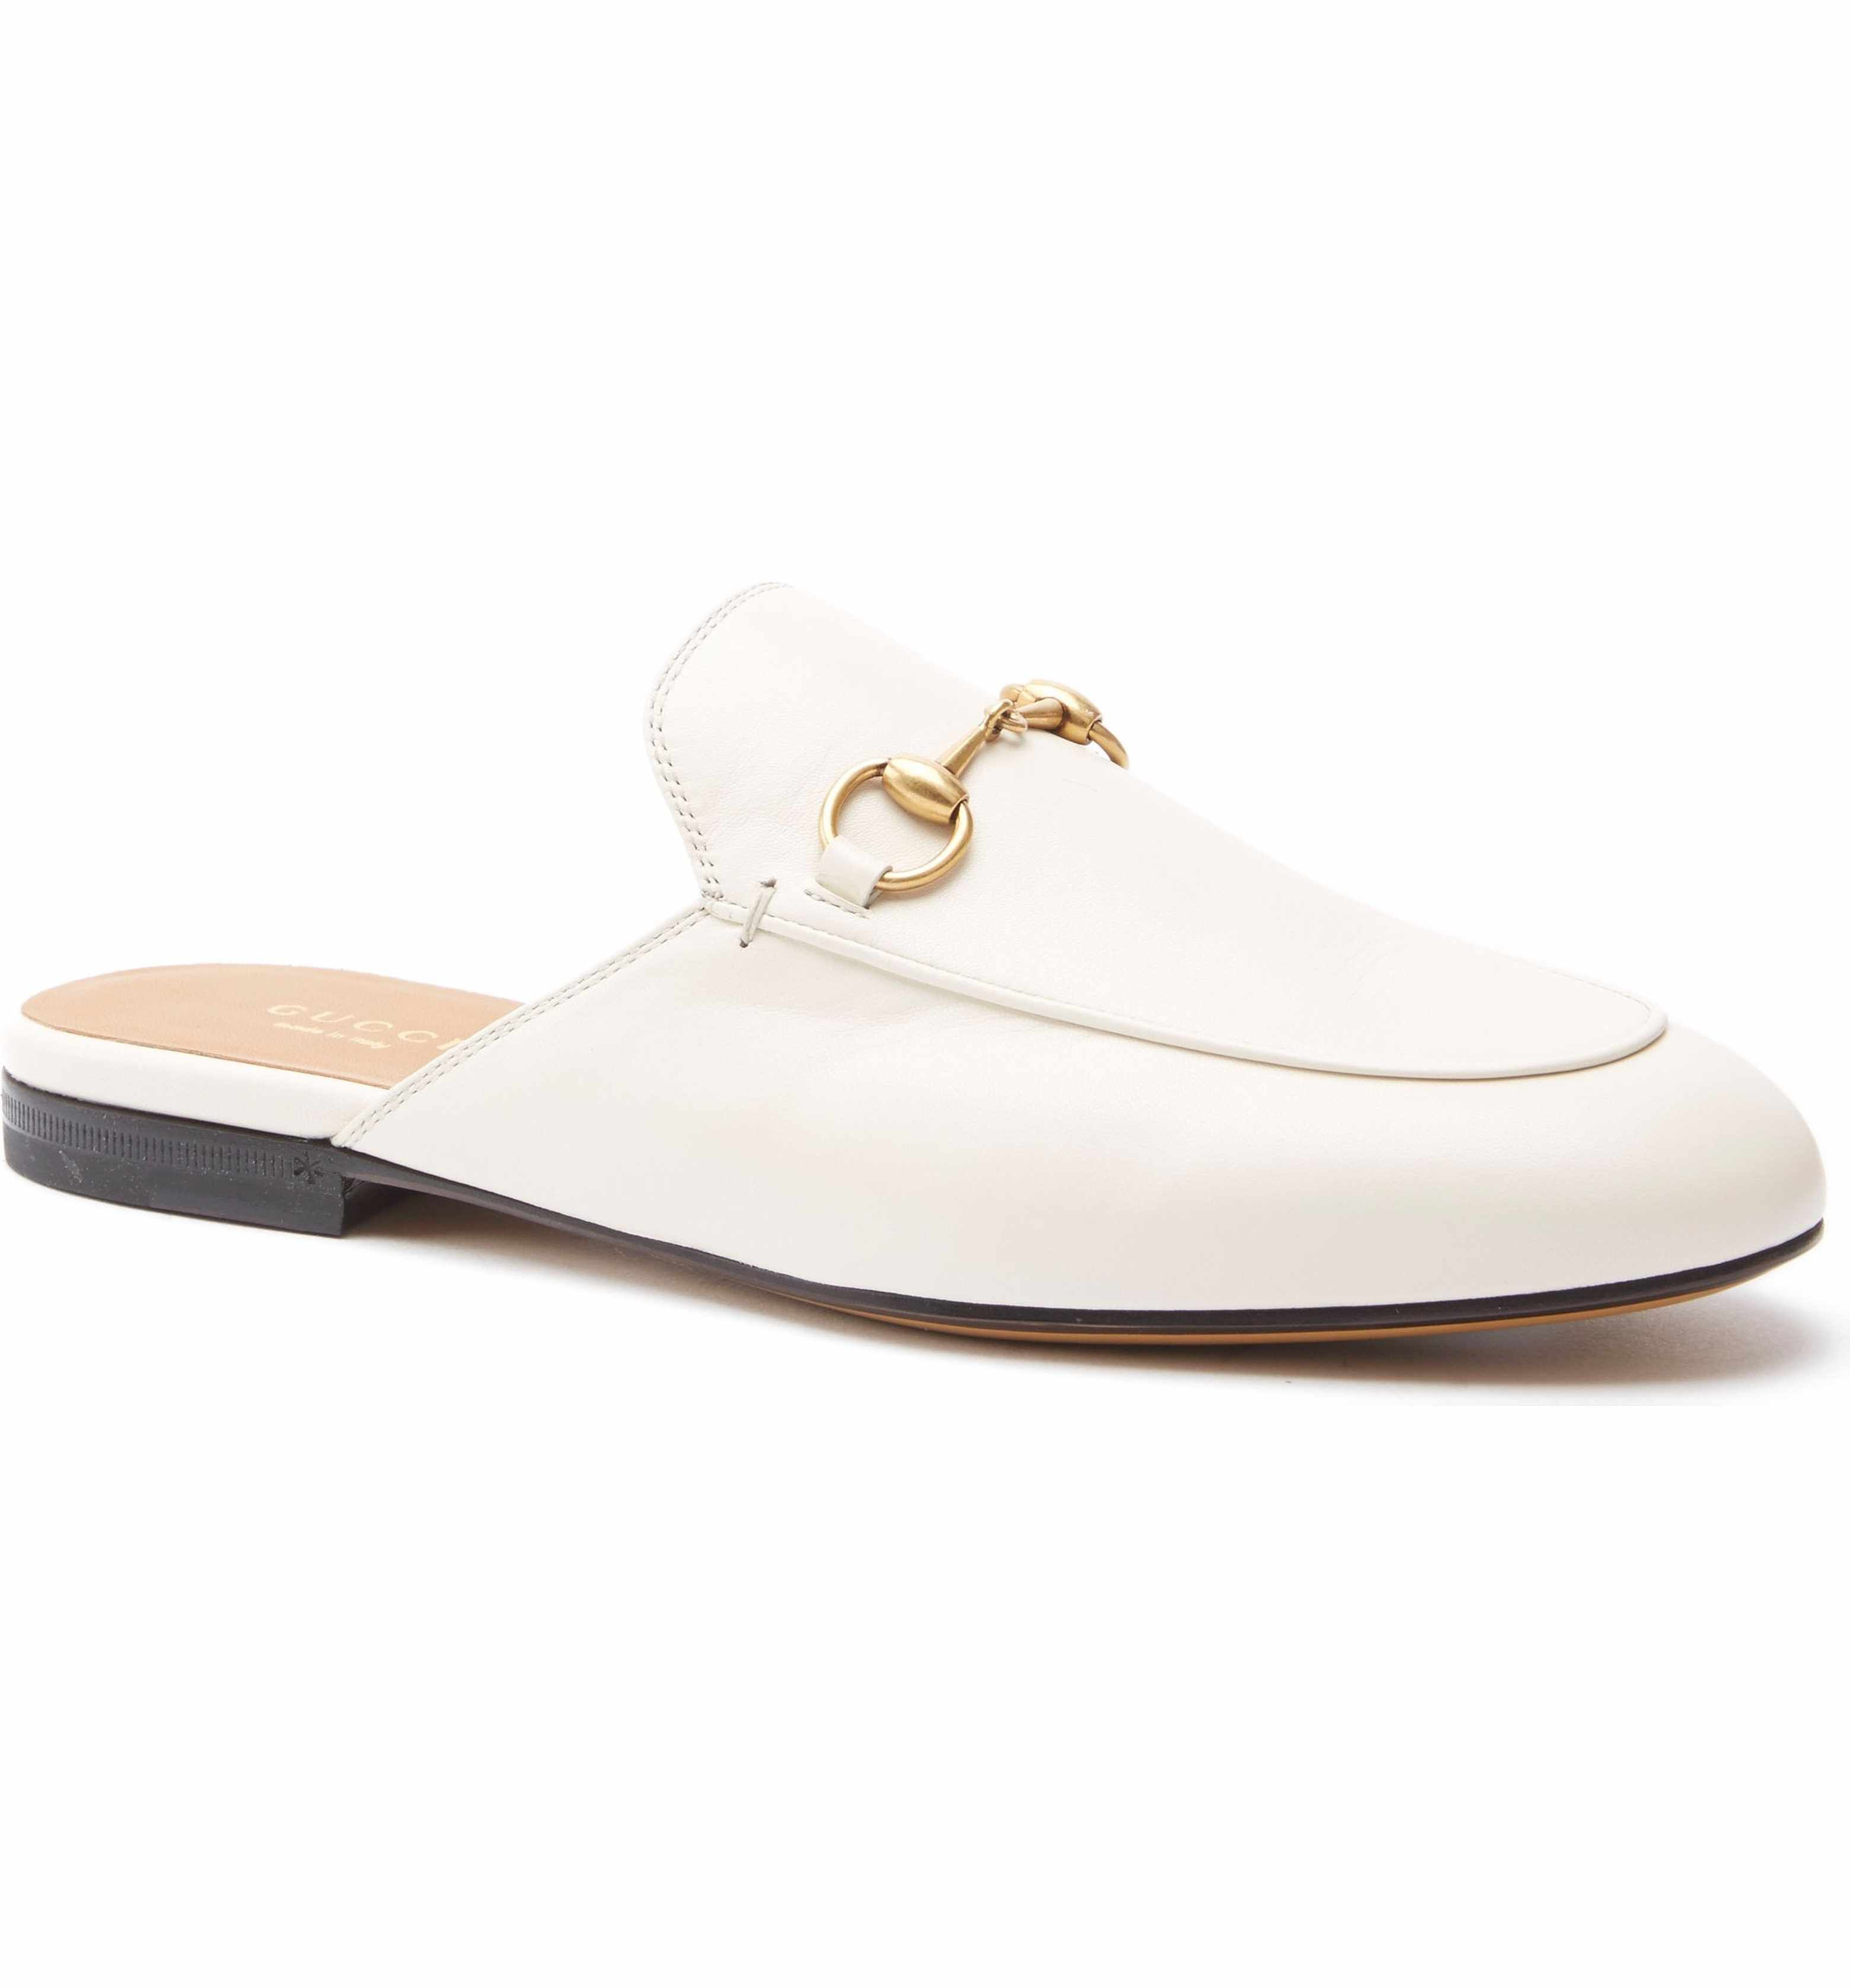 4c87aa01bb8 Main Image - Gucci Princetown Loafer Mule (Women)